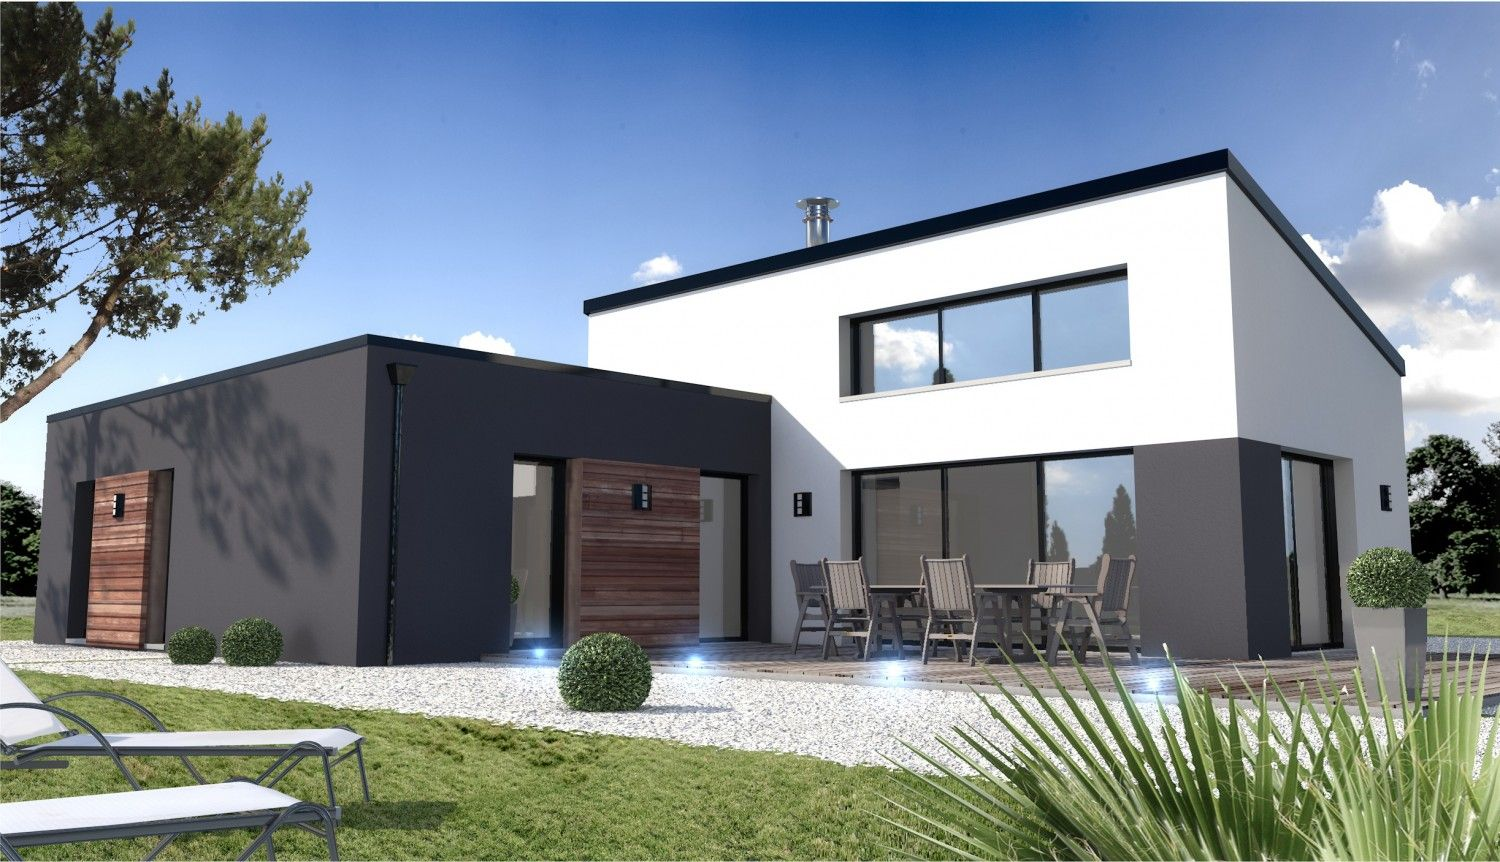 Top constructeur maison contemporaine Beauvoir sur Mer vendée 85  XL26